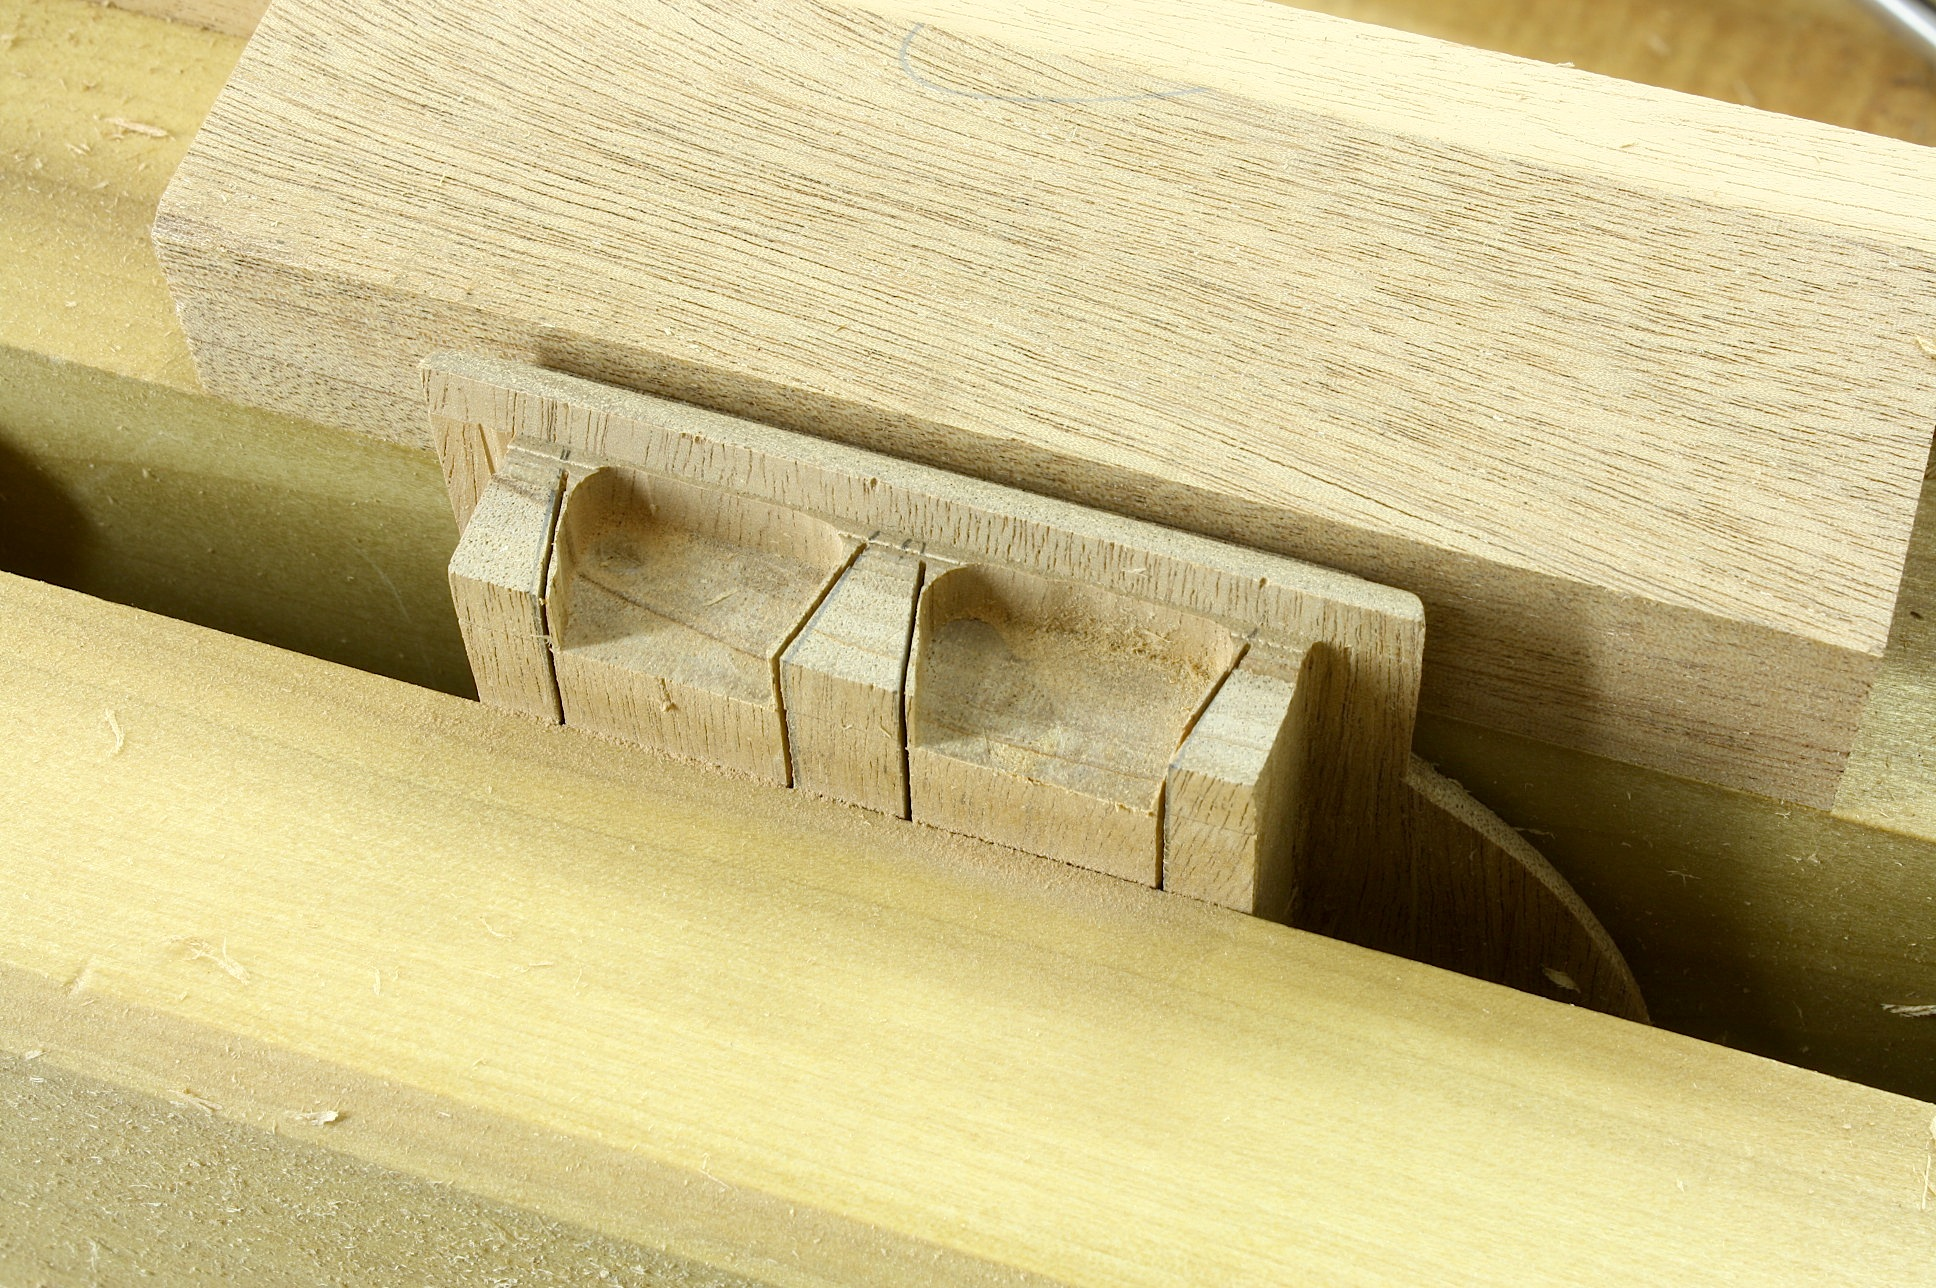 Woodworking Bench Vise Installation Wooden Plans Wood